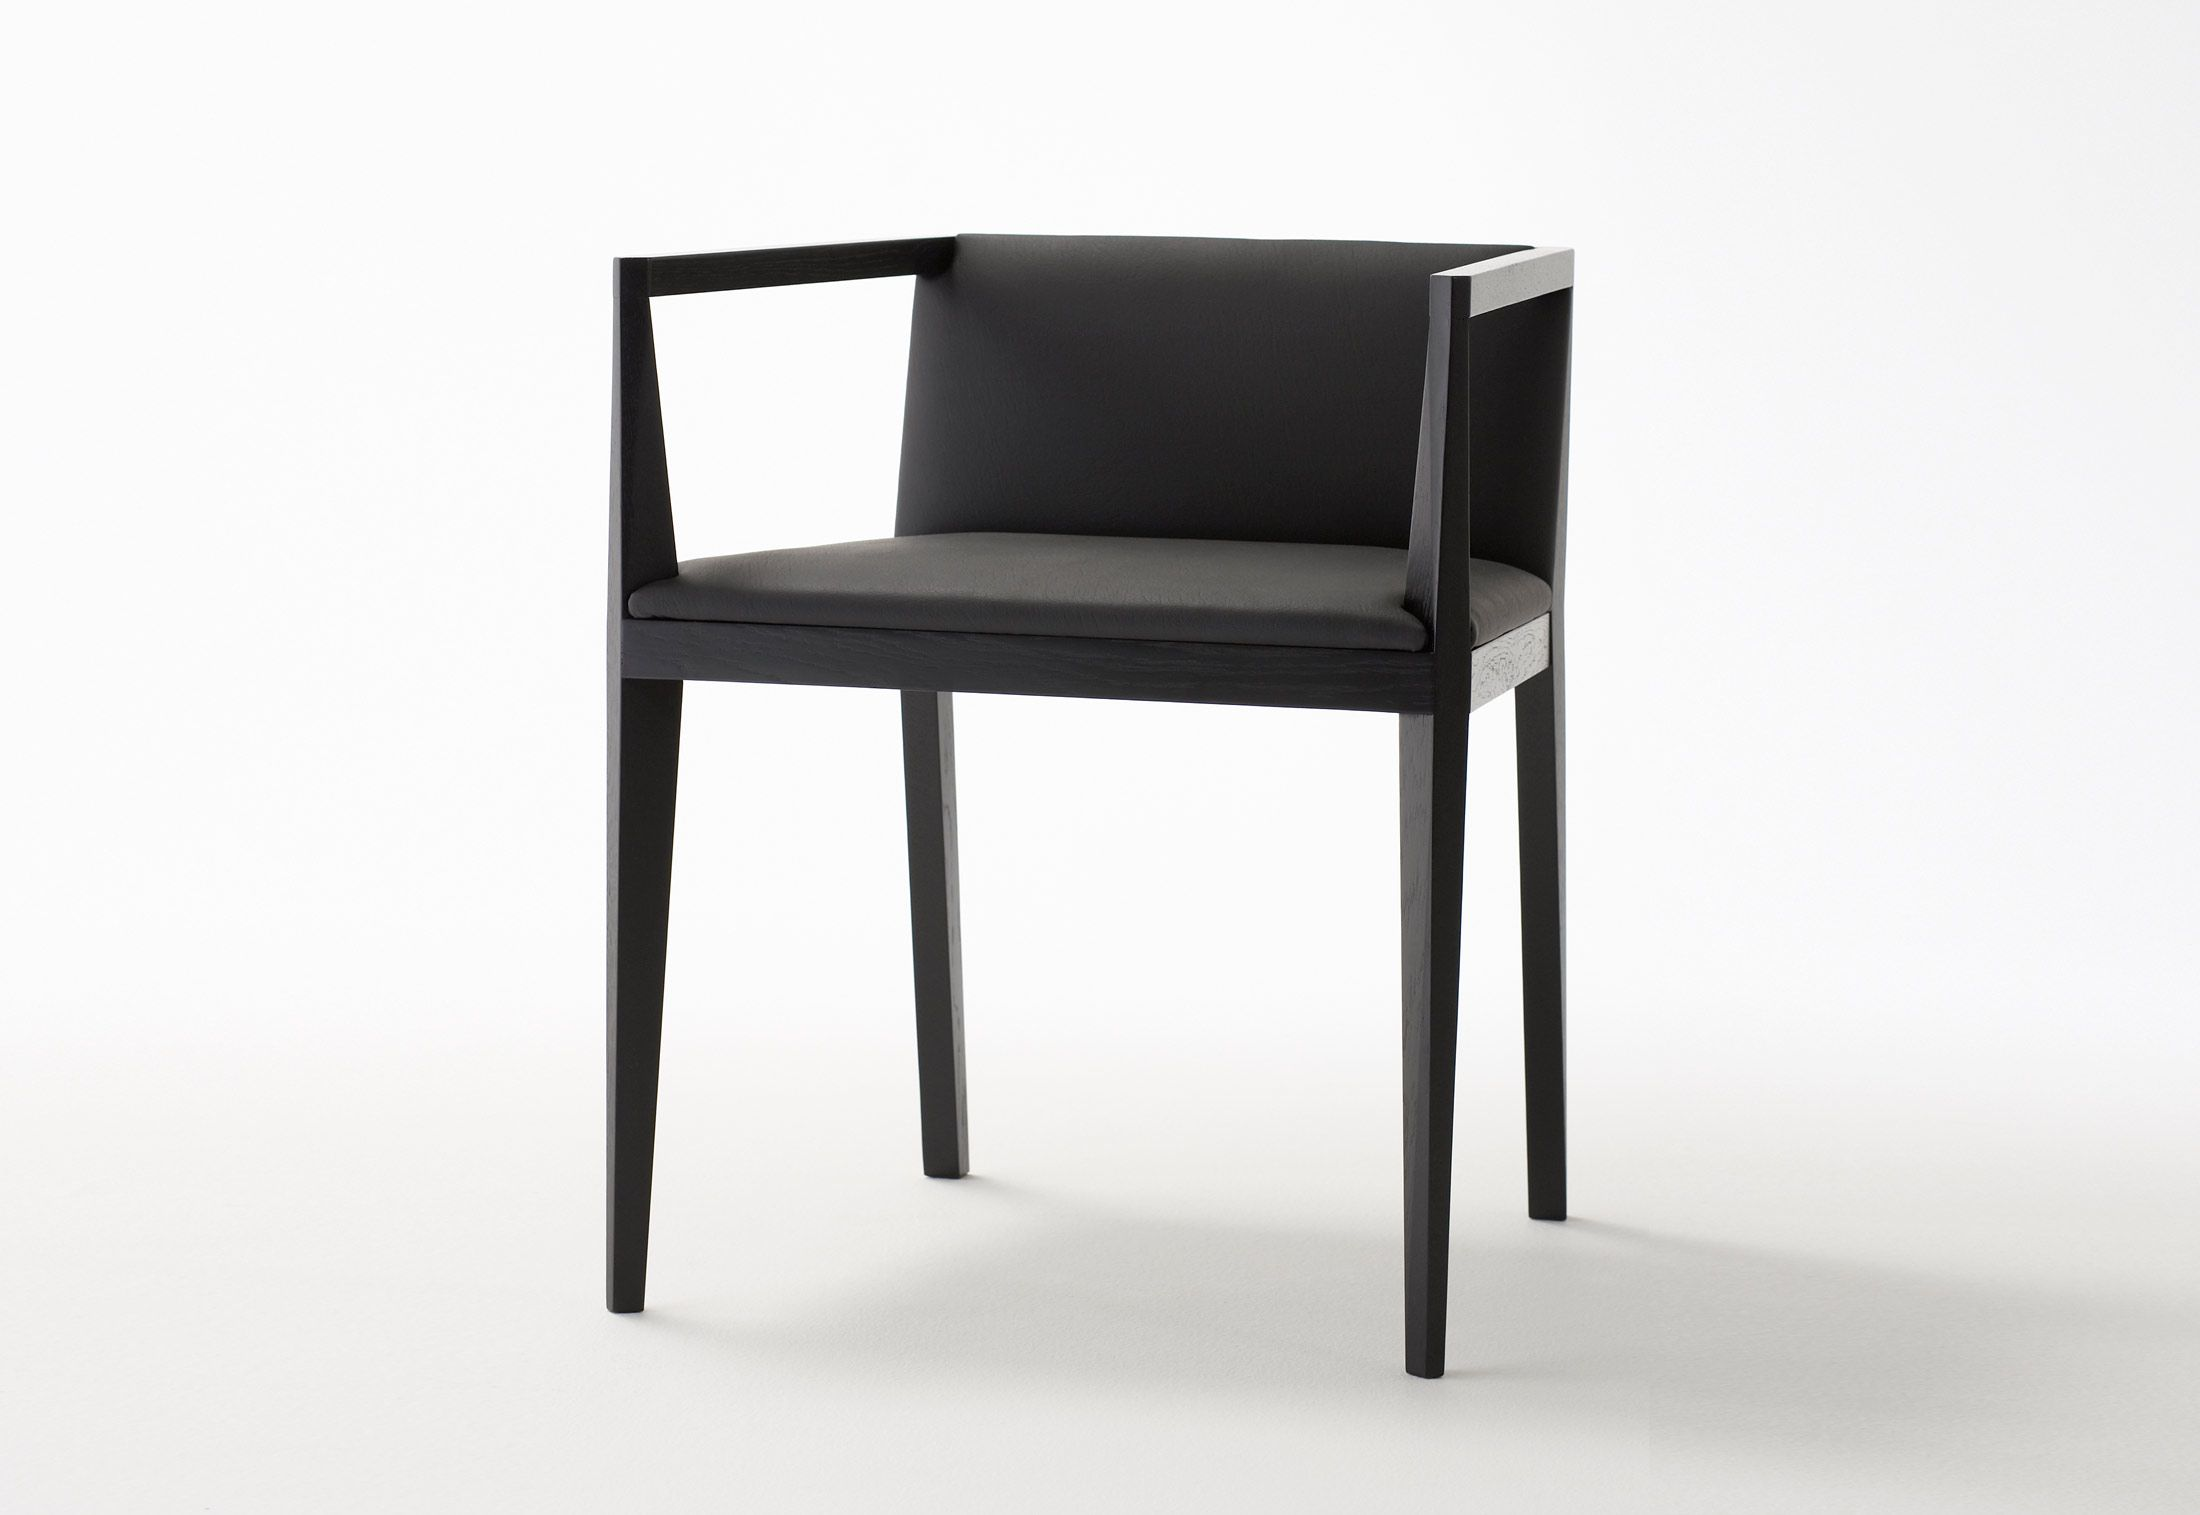 Pencil Chair Black U0026 Black Collection [2012] By Nendo For K%